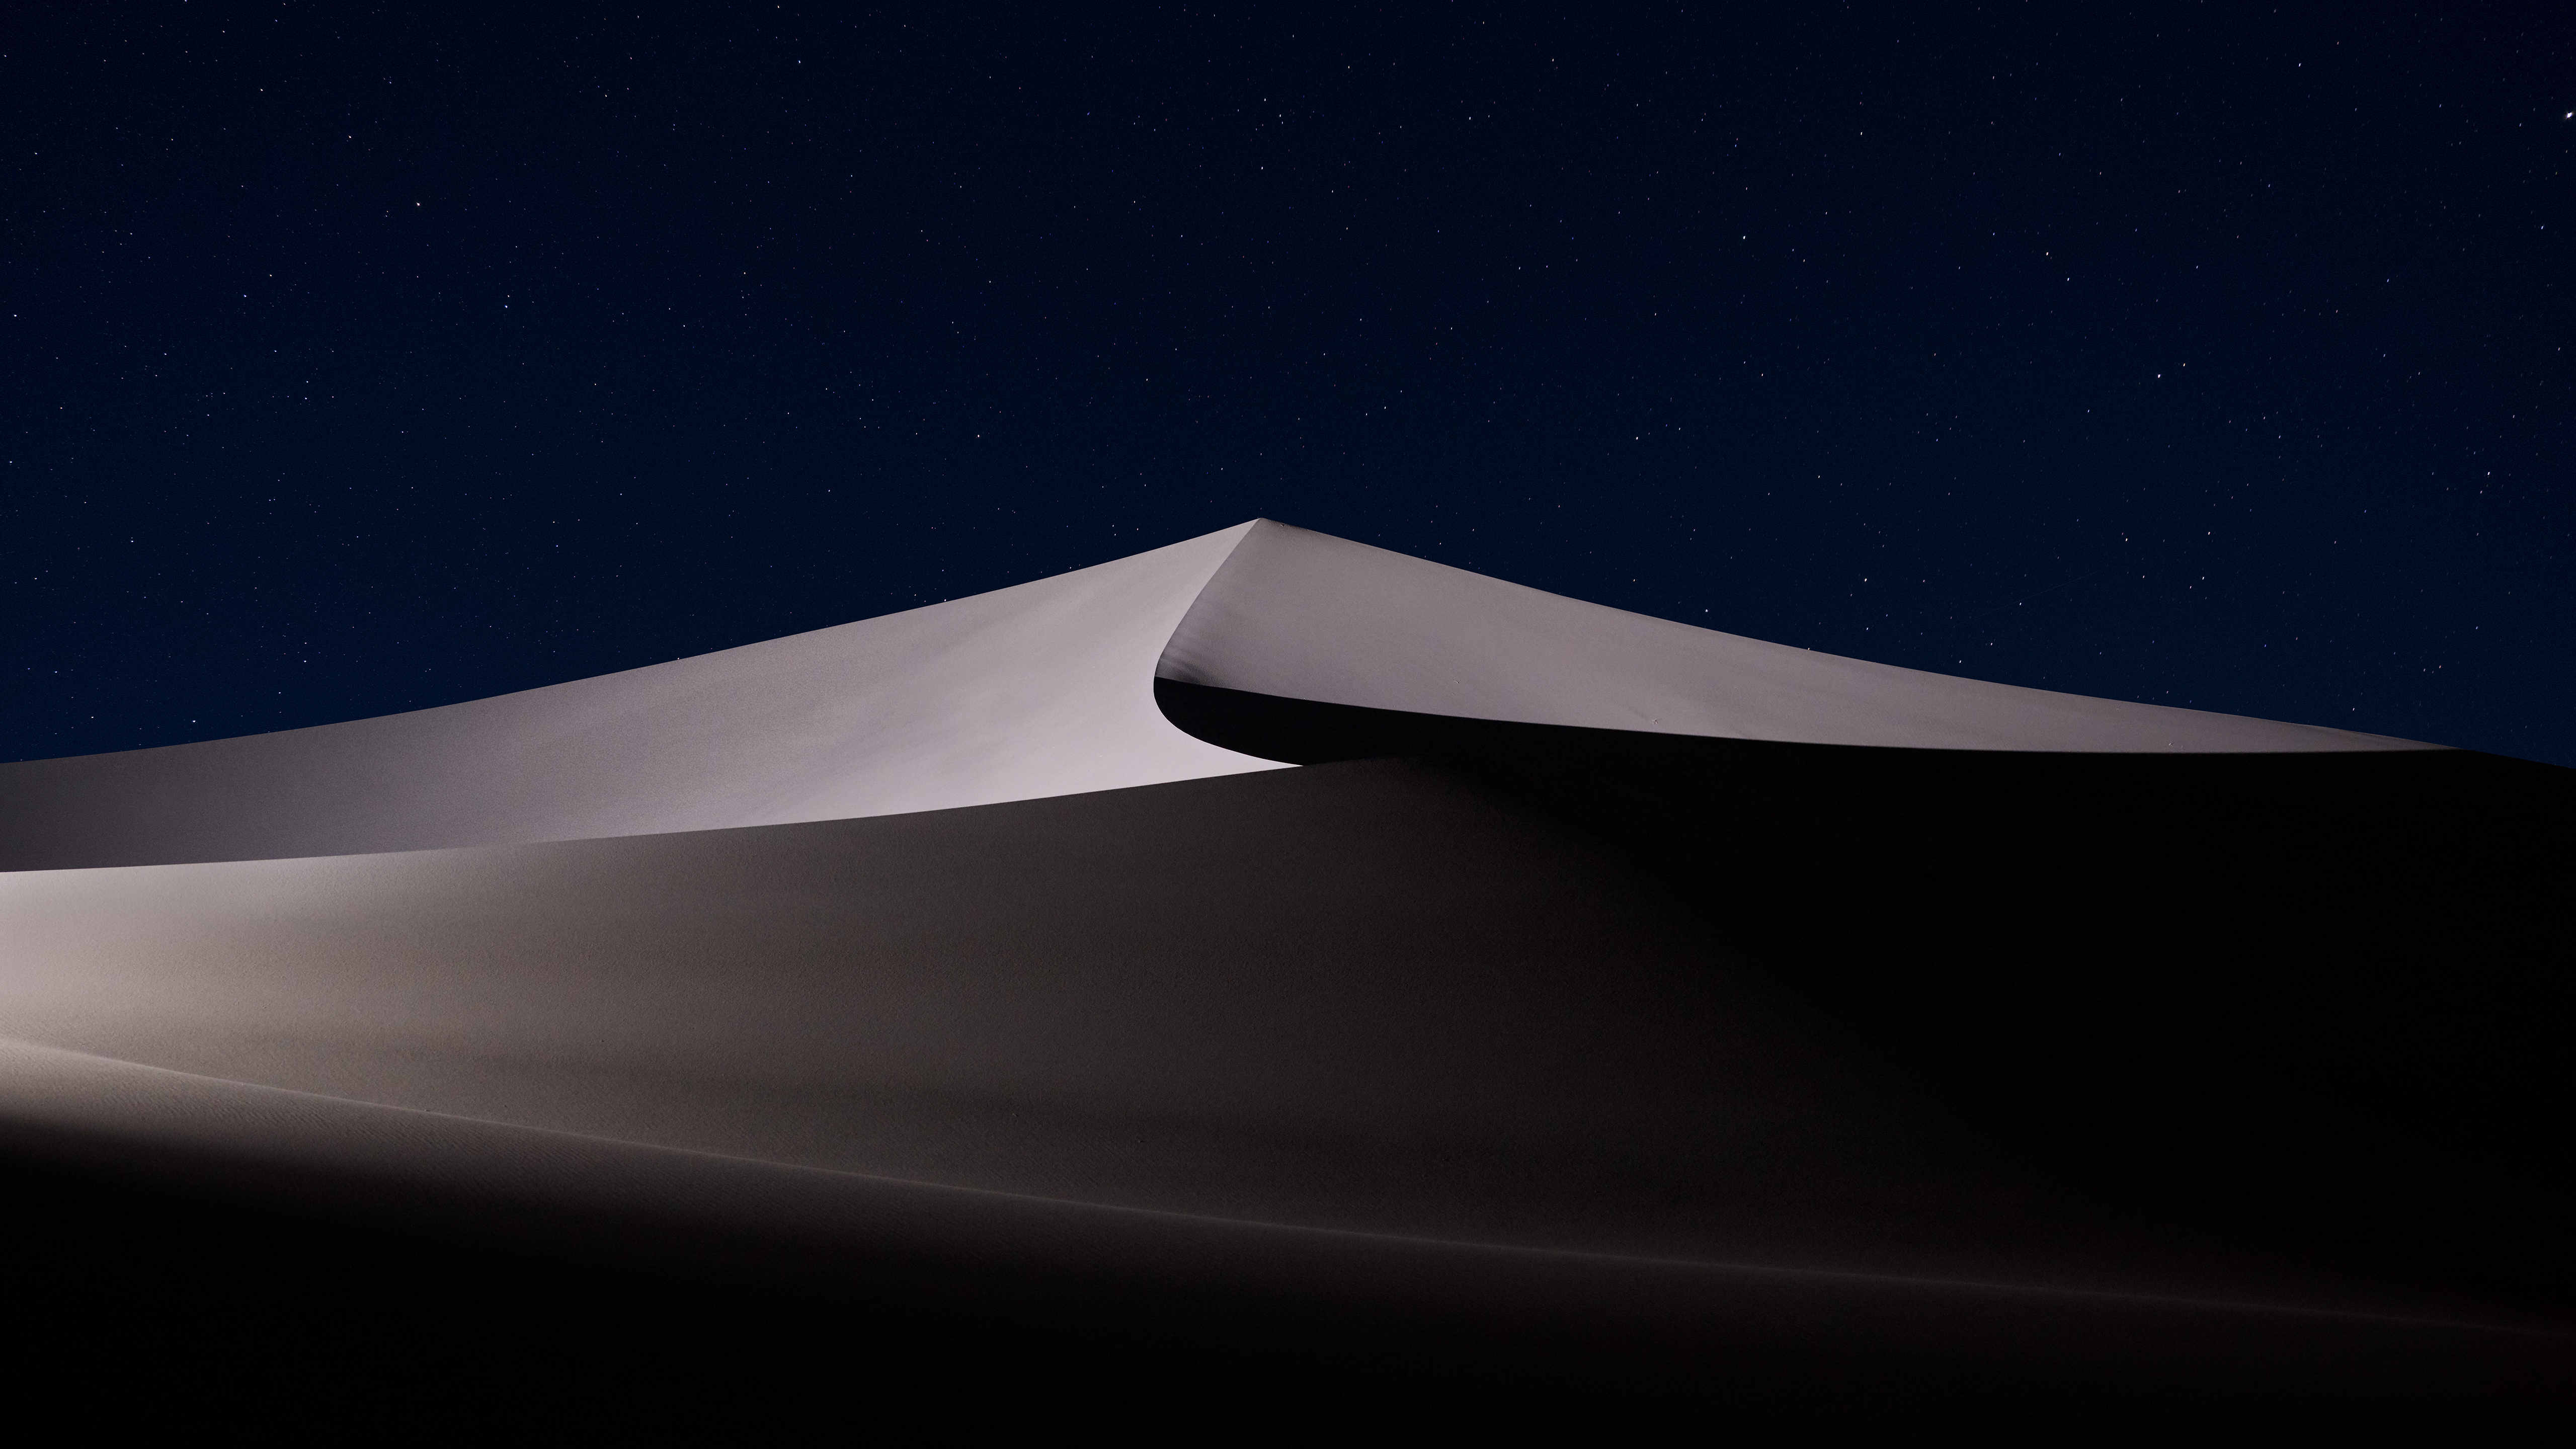 5120x2880 Desert Night Macos Mojave 5k 5k Hd 4k Wallpapers Images Backgrounds Photos And Pictures